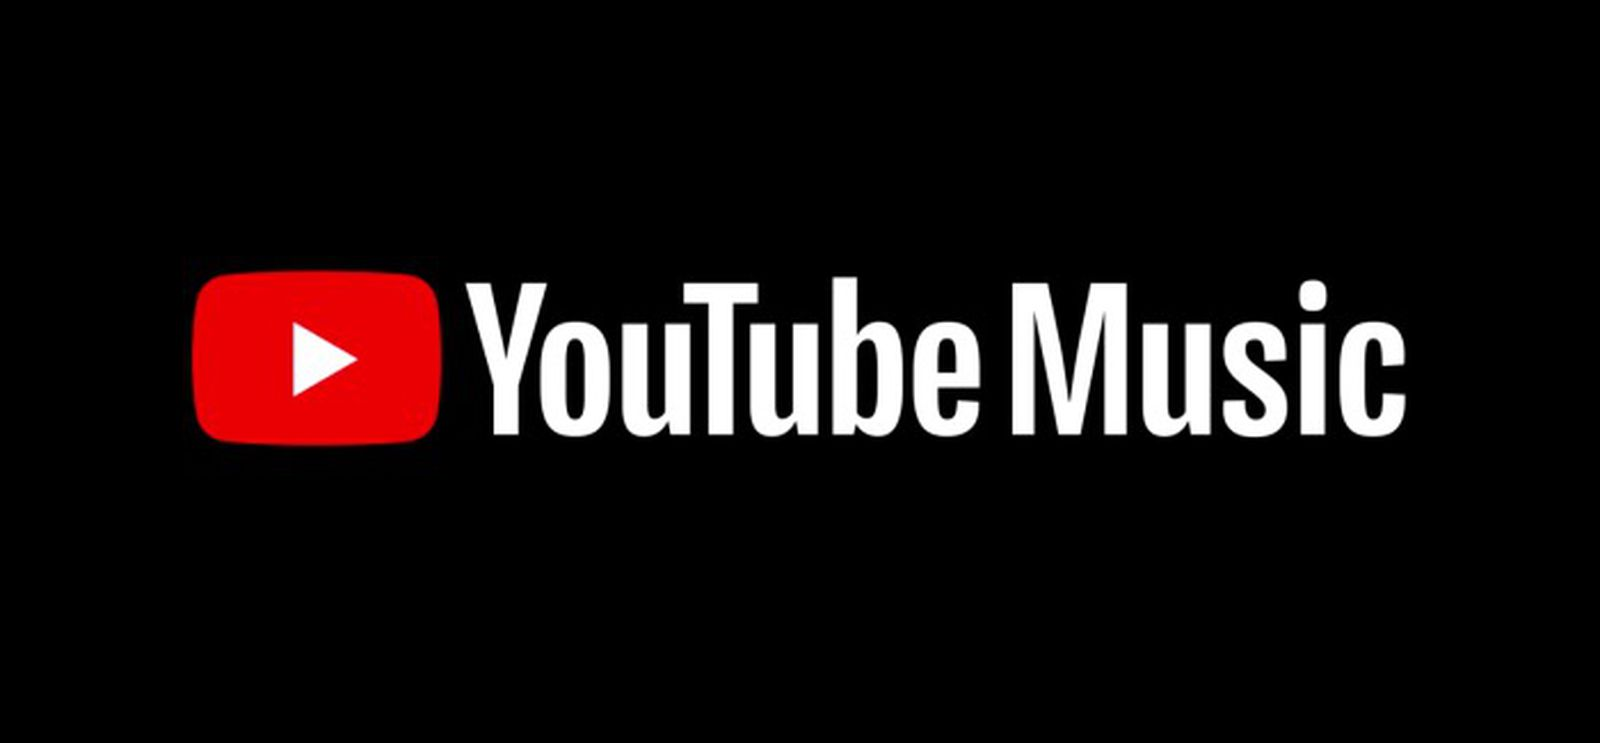 Youtube Music Readies Free Upload Feature Google Play Music Migration Service Coming Macrumors